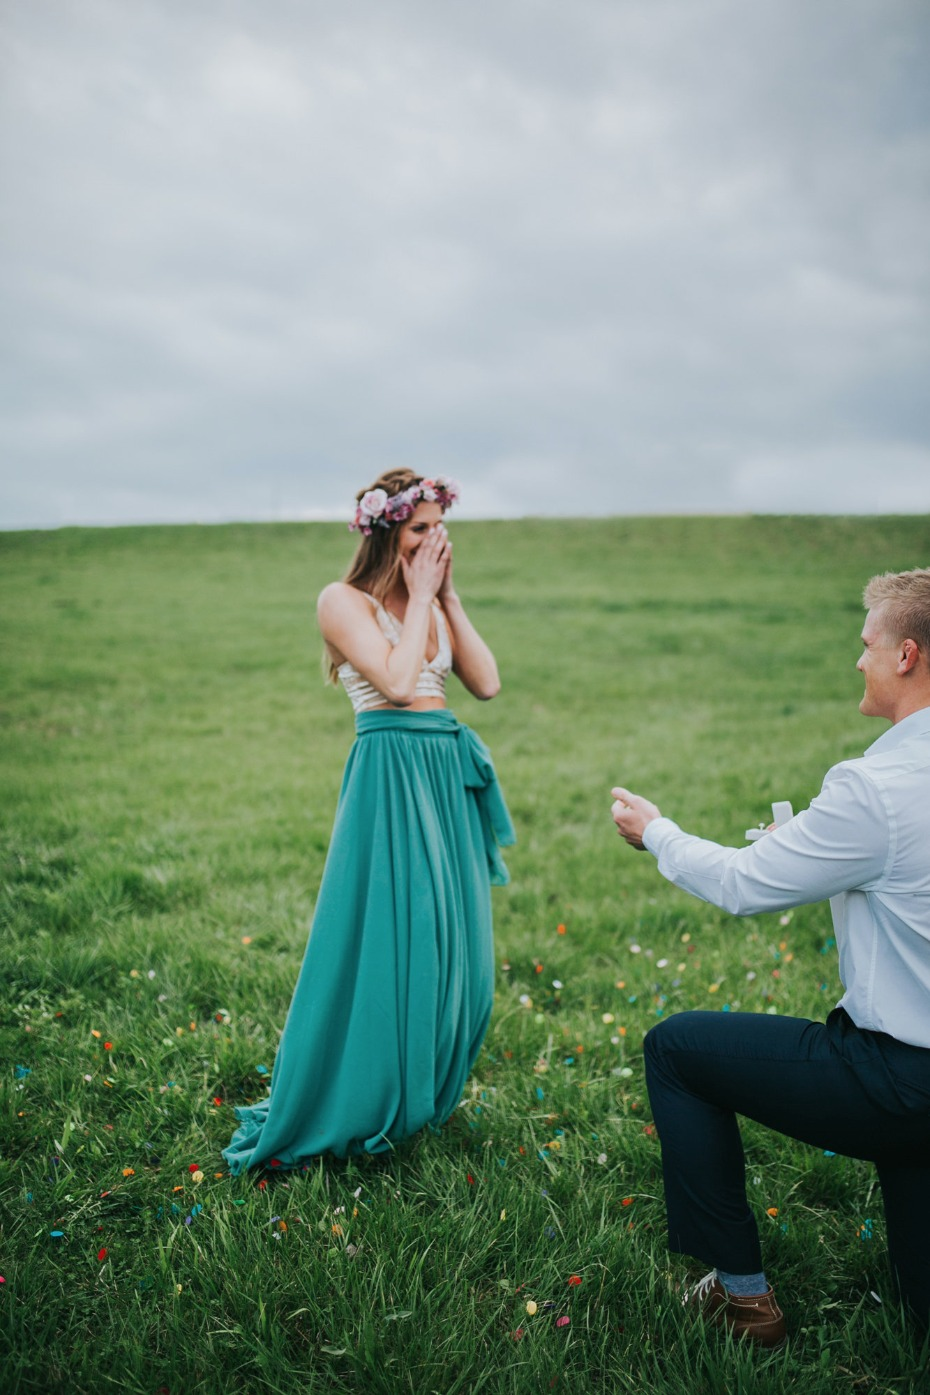 She says YES!